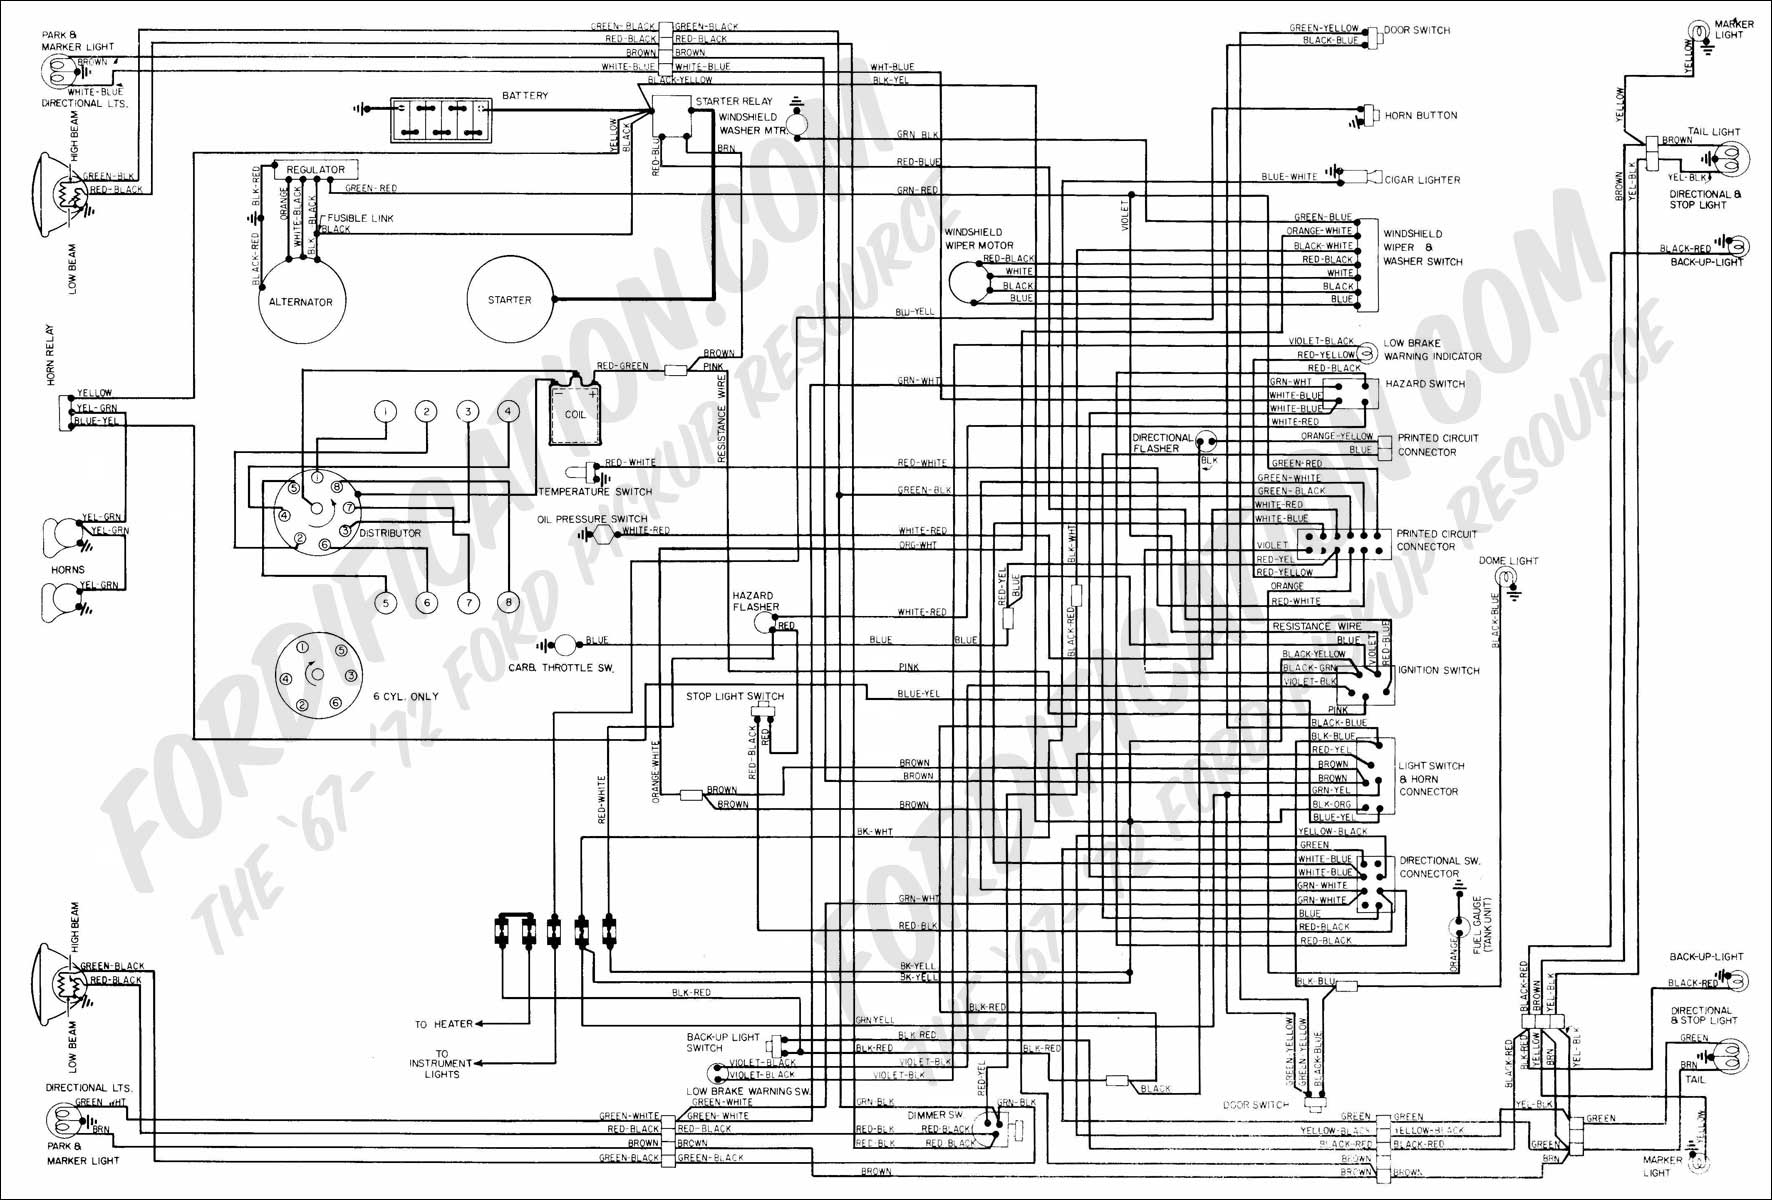 ford f150 wiring diagrams ford image wiring diagram 2006 ford f150 engine wiring diagram wire diagram on ford f150 wiring diagrams